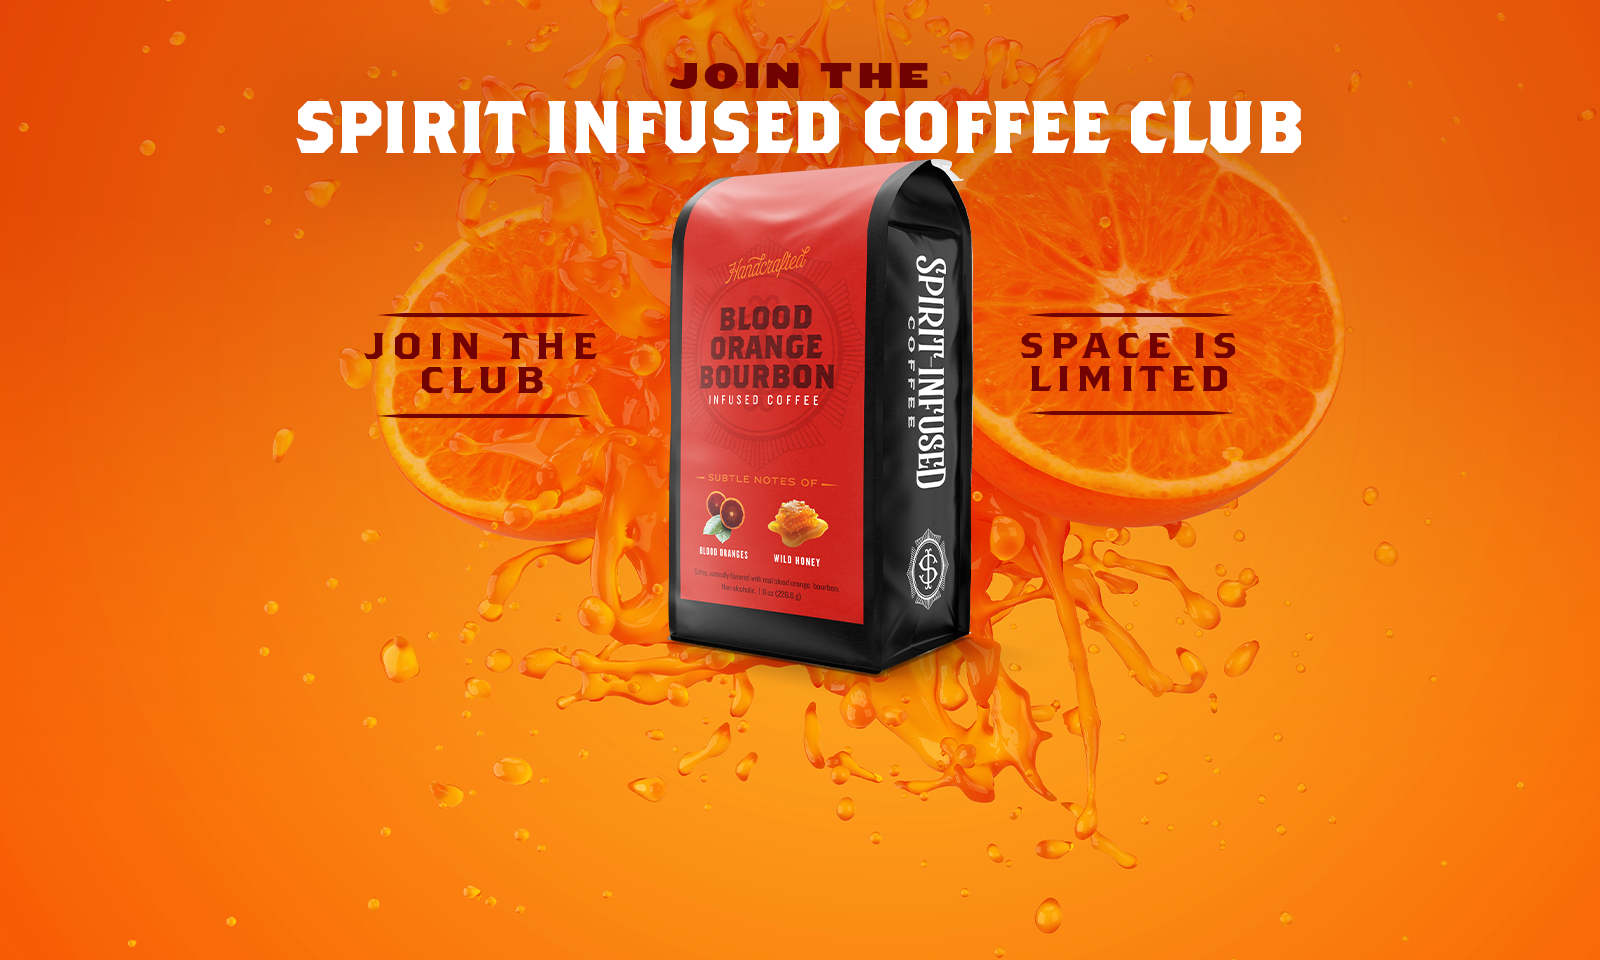 Join the Spirit Infused Coffee Club.